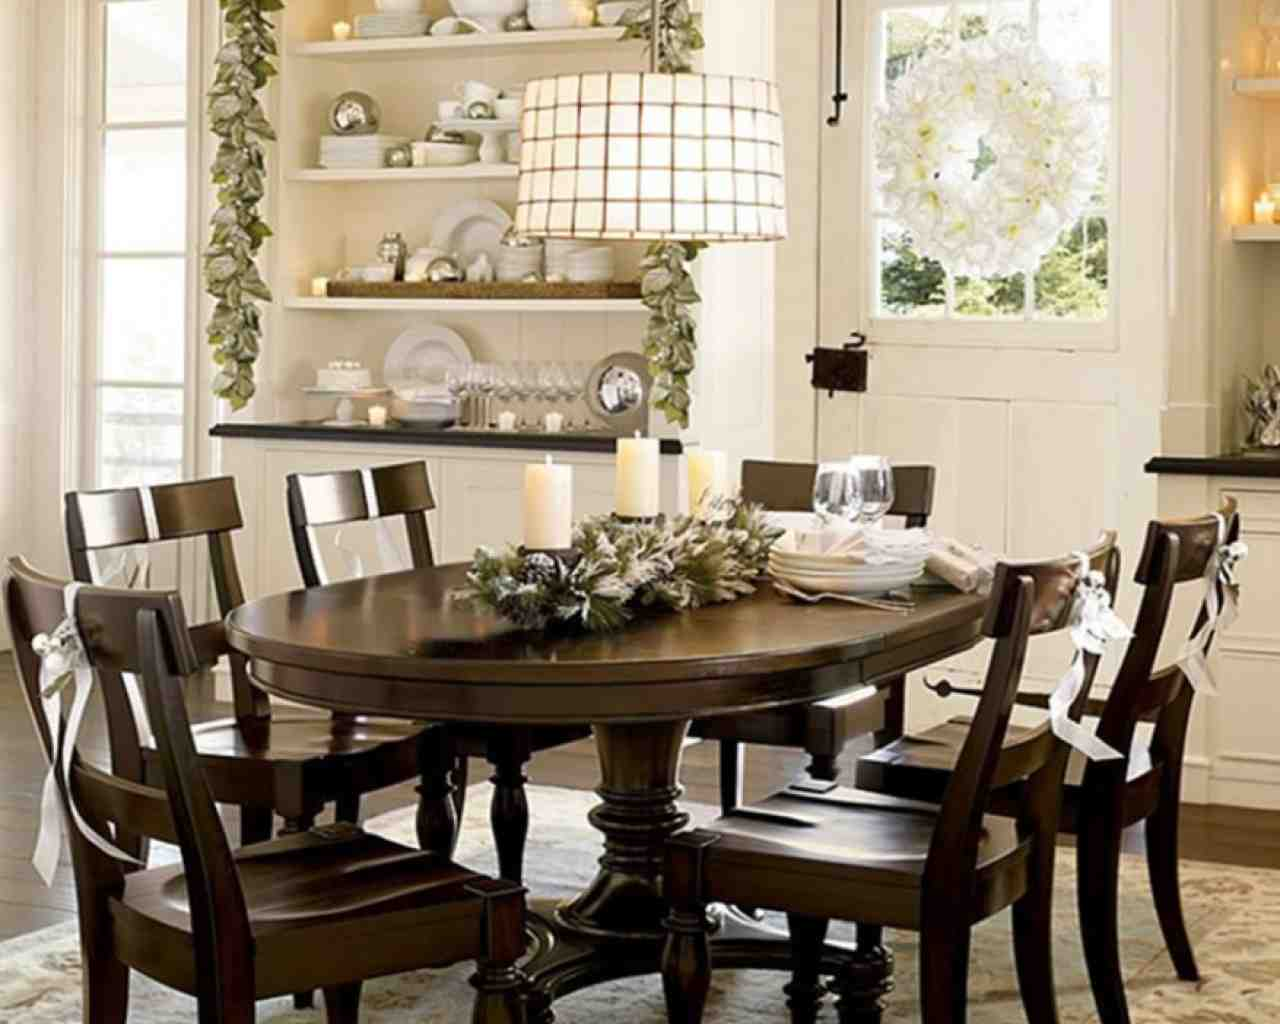 Dining Room Decorating Ideas on a Bud Decor IdeasDecor Ideas